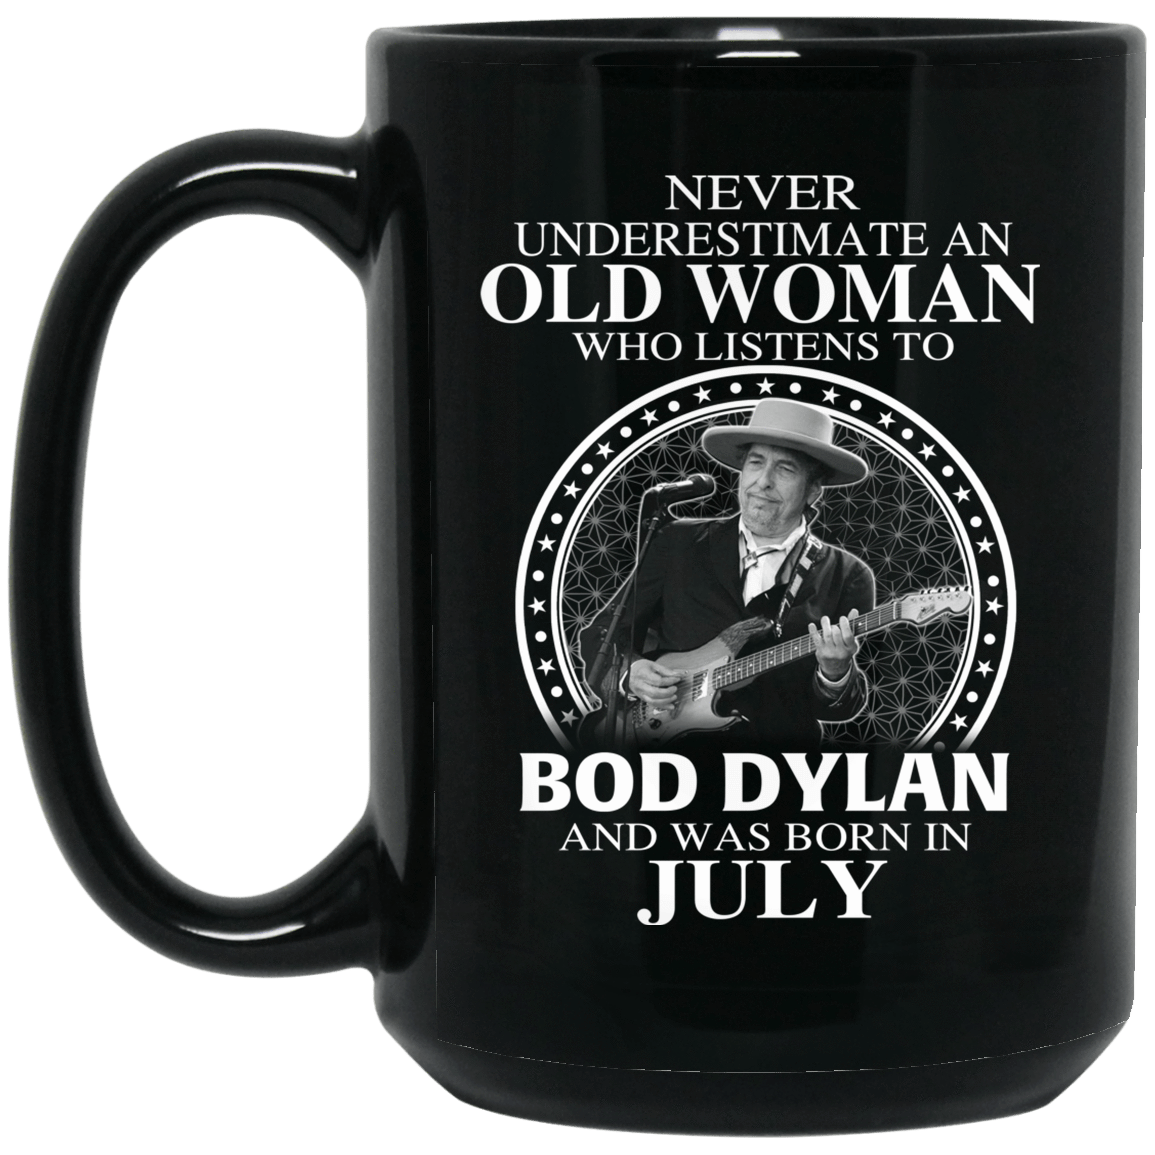 An Old Woman Who Listens To Bob Dylan And Was Born In July Mug 1066-10182-76154141-49311 - Tee Ript